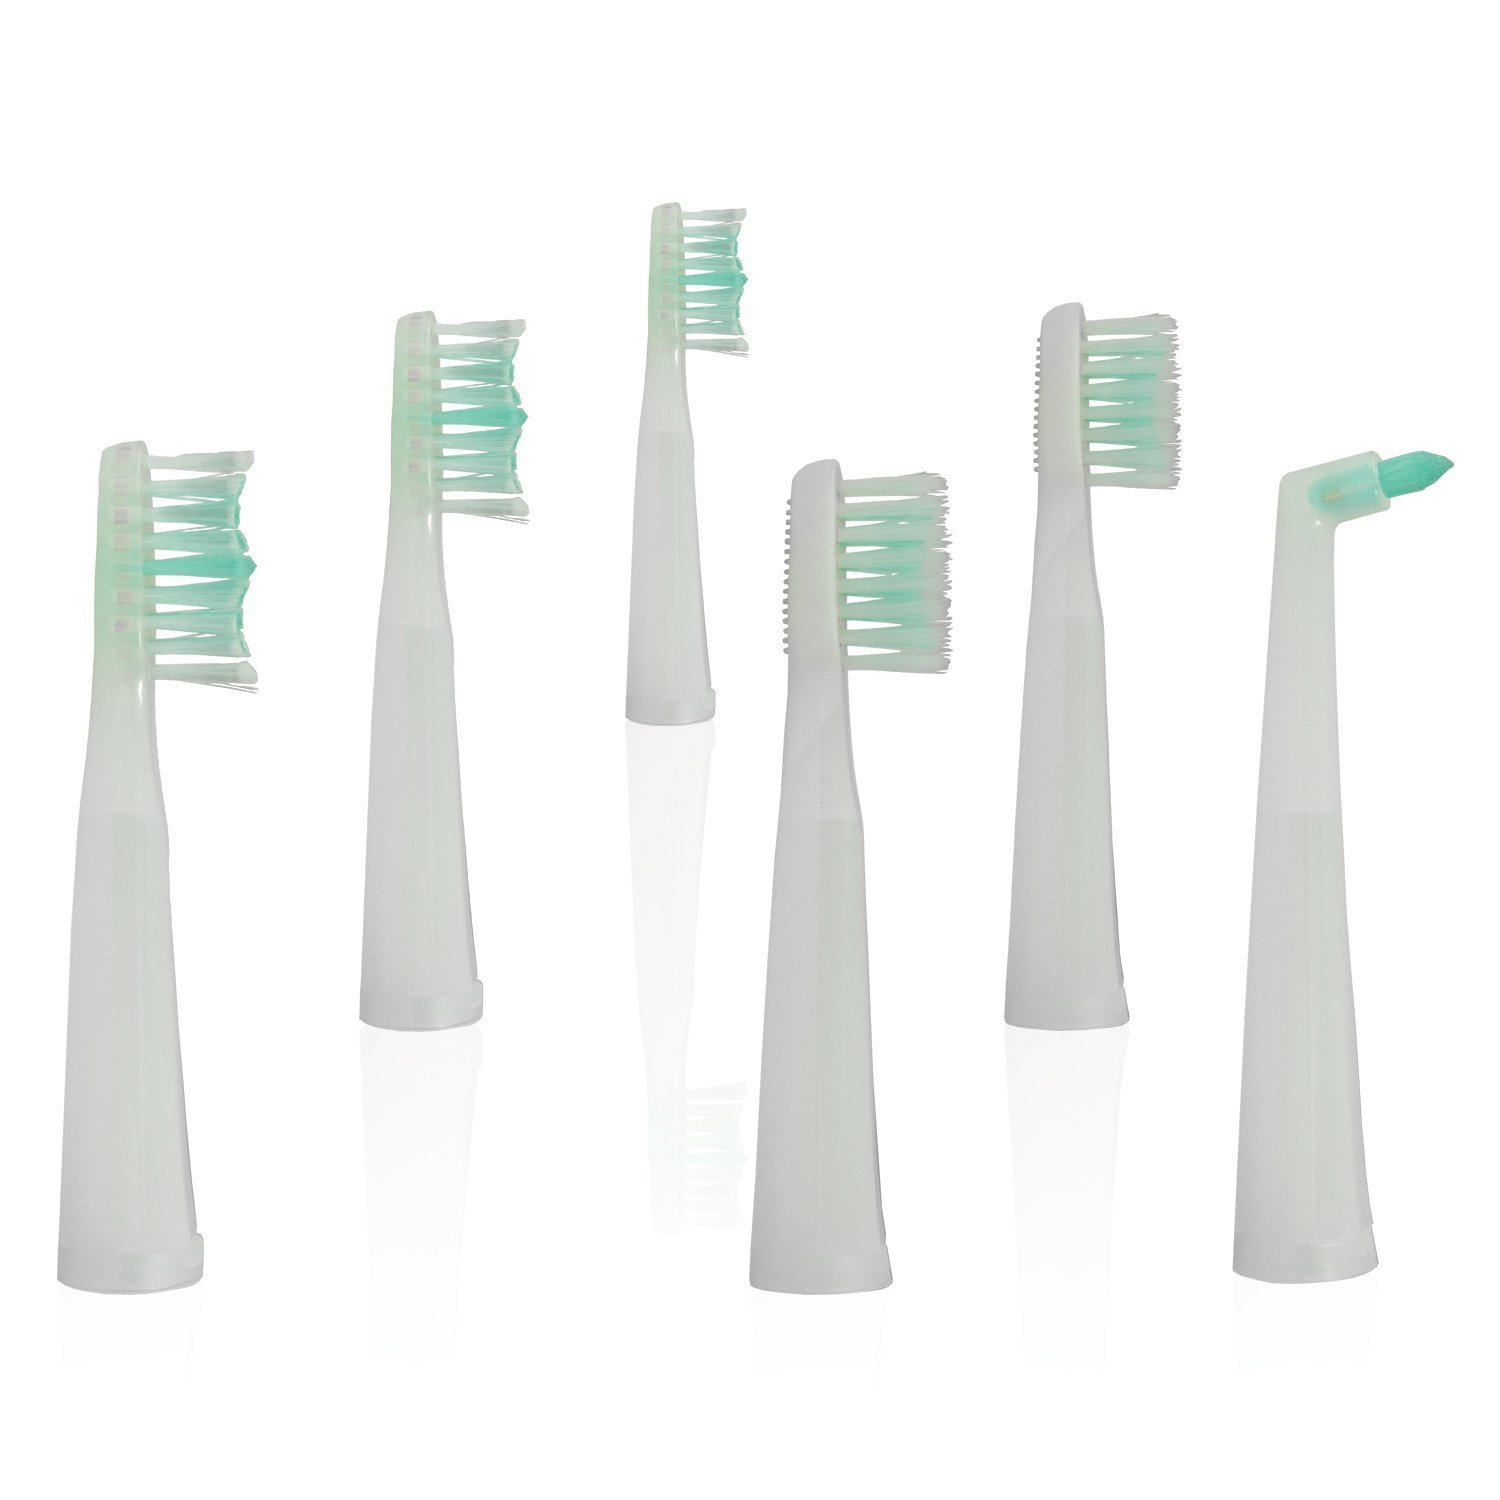 Sterline T80 Sonic Pulse Electric Rechargeable Toothbrush Replacement Heads, 6 Toothbrush Heads Replacements for Sterline Electric Toothbrush Model T80, White